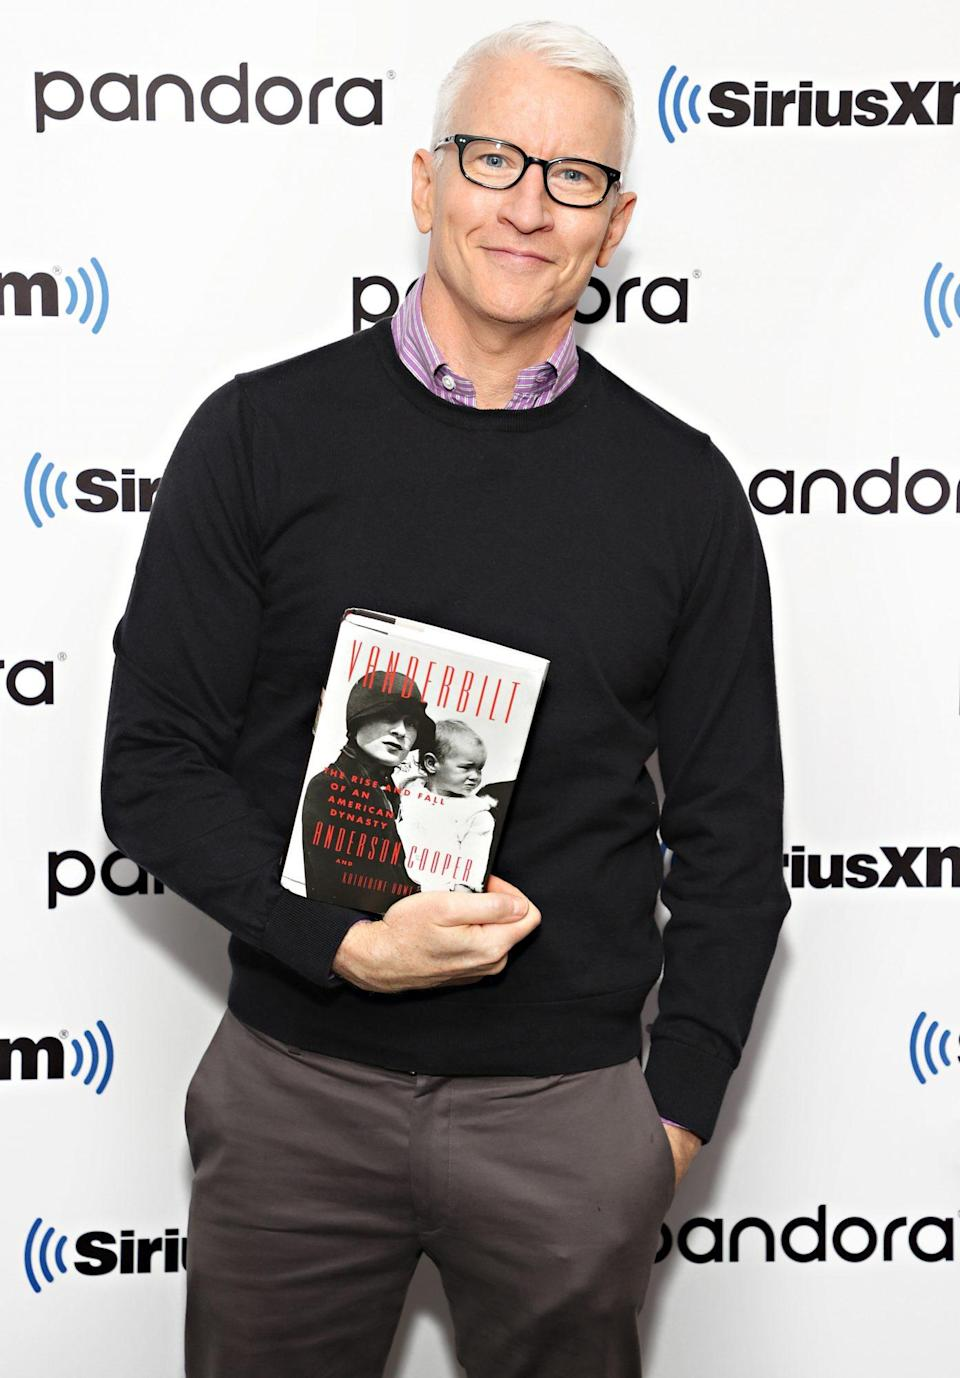 <p>Anderson Cooper holds his new tome on Sept. 22 ahead of an interview on SiriusXM in New York City.</p>